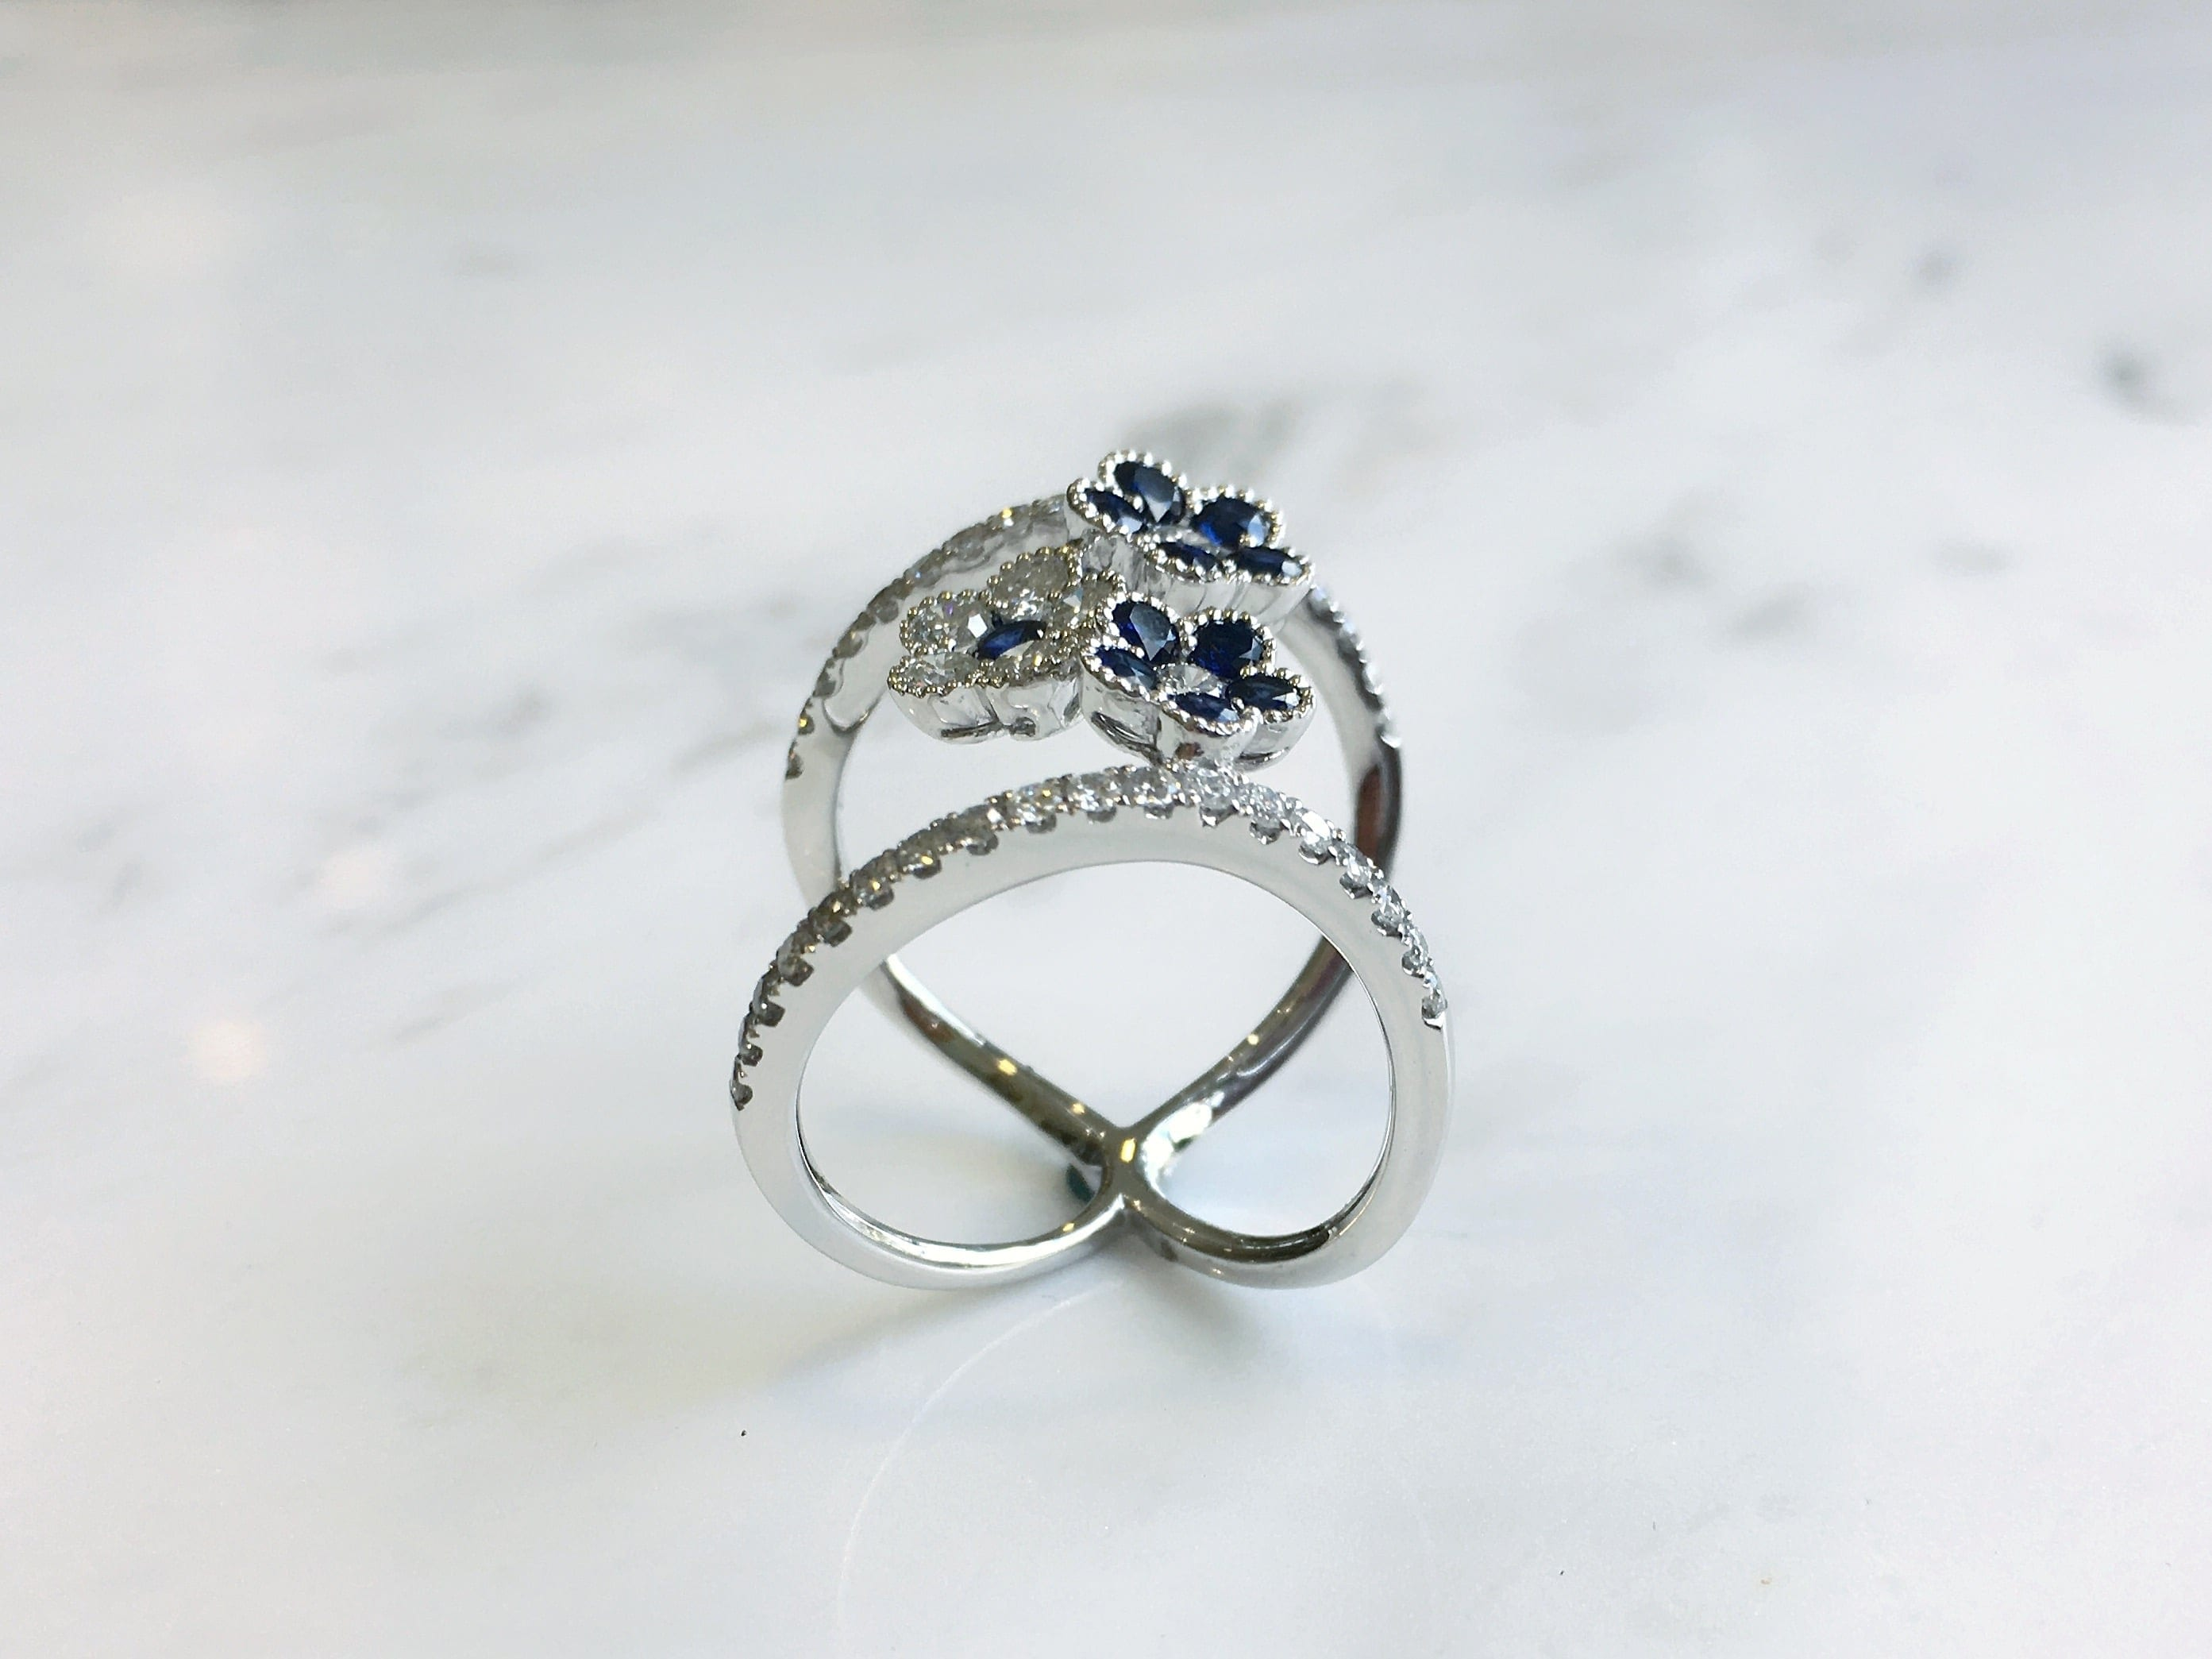 engagement rings ring stock isolated depositphotos diamond stone photo by gemstone wedding fruitcocktailcreative on white colored blue